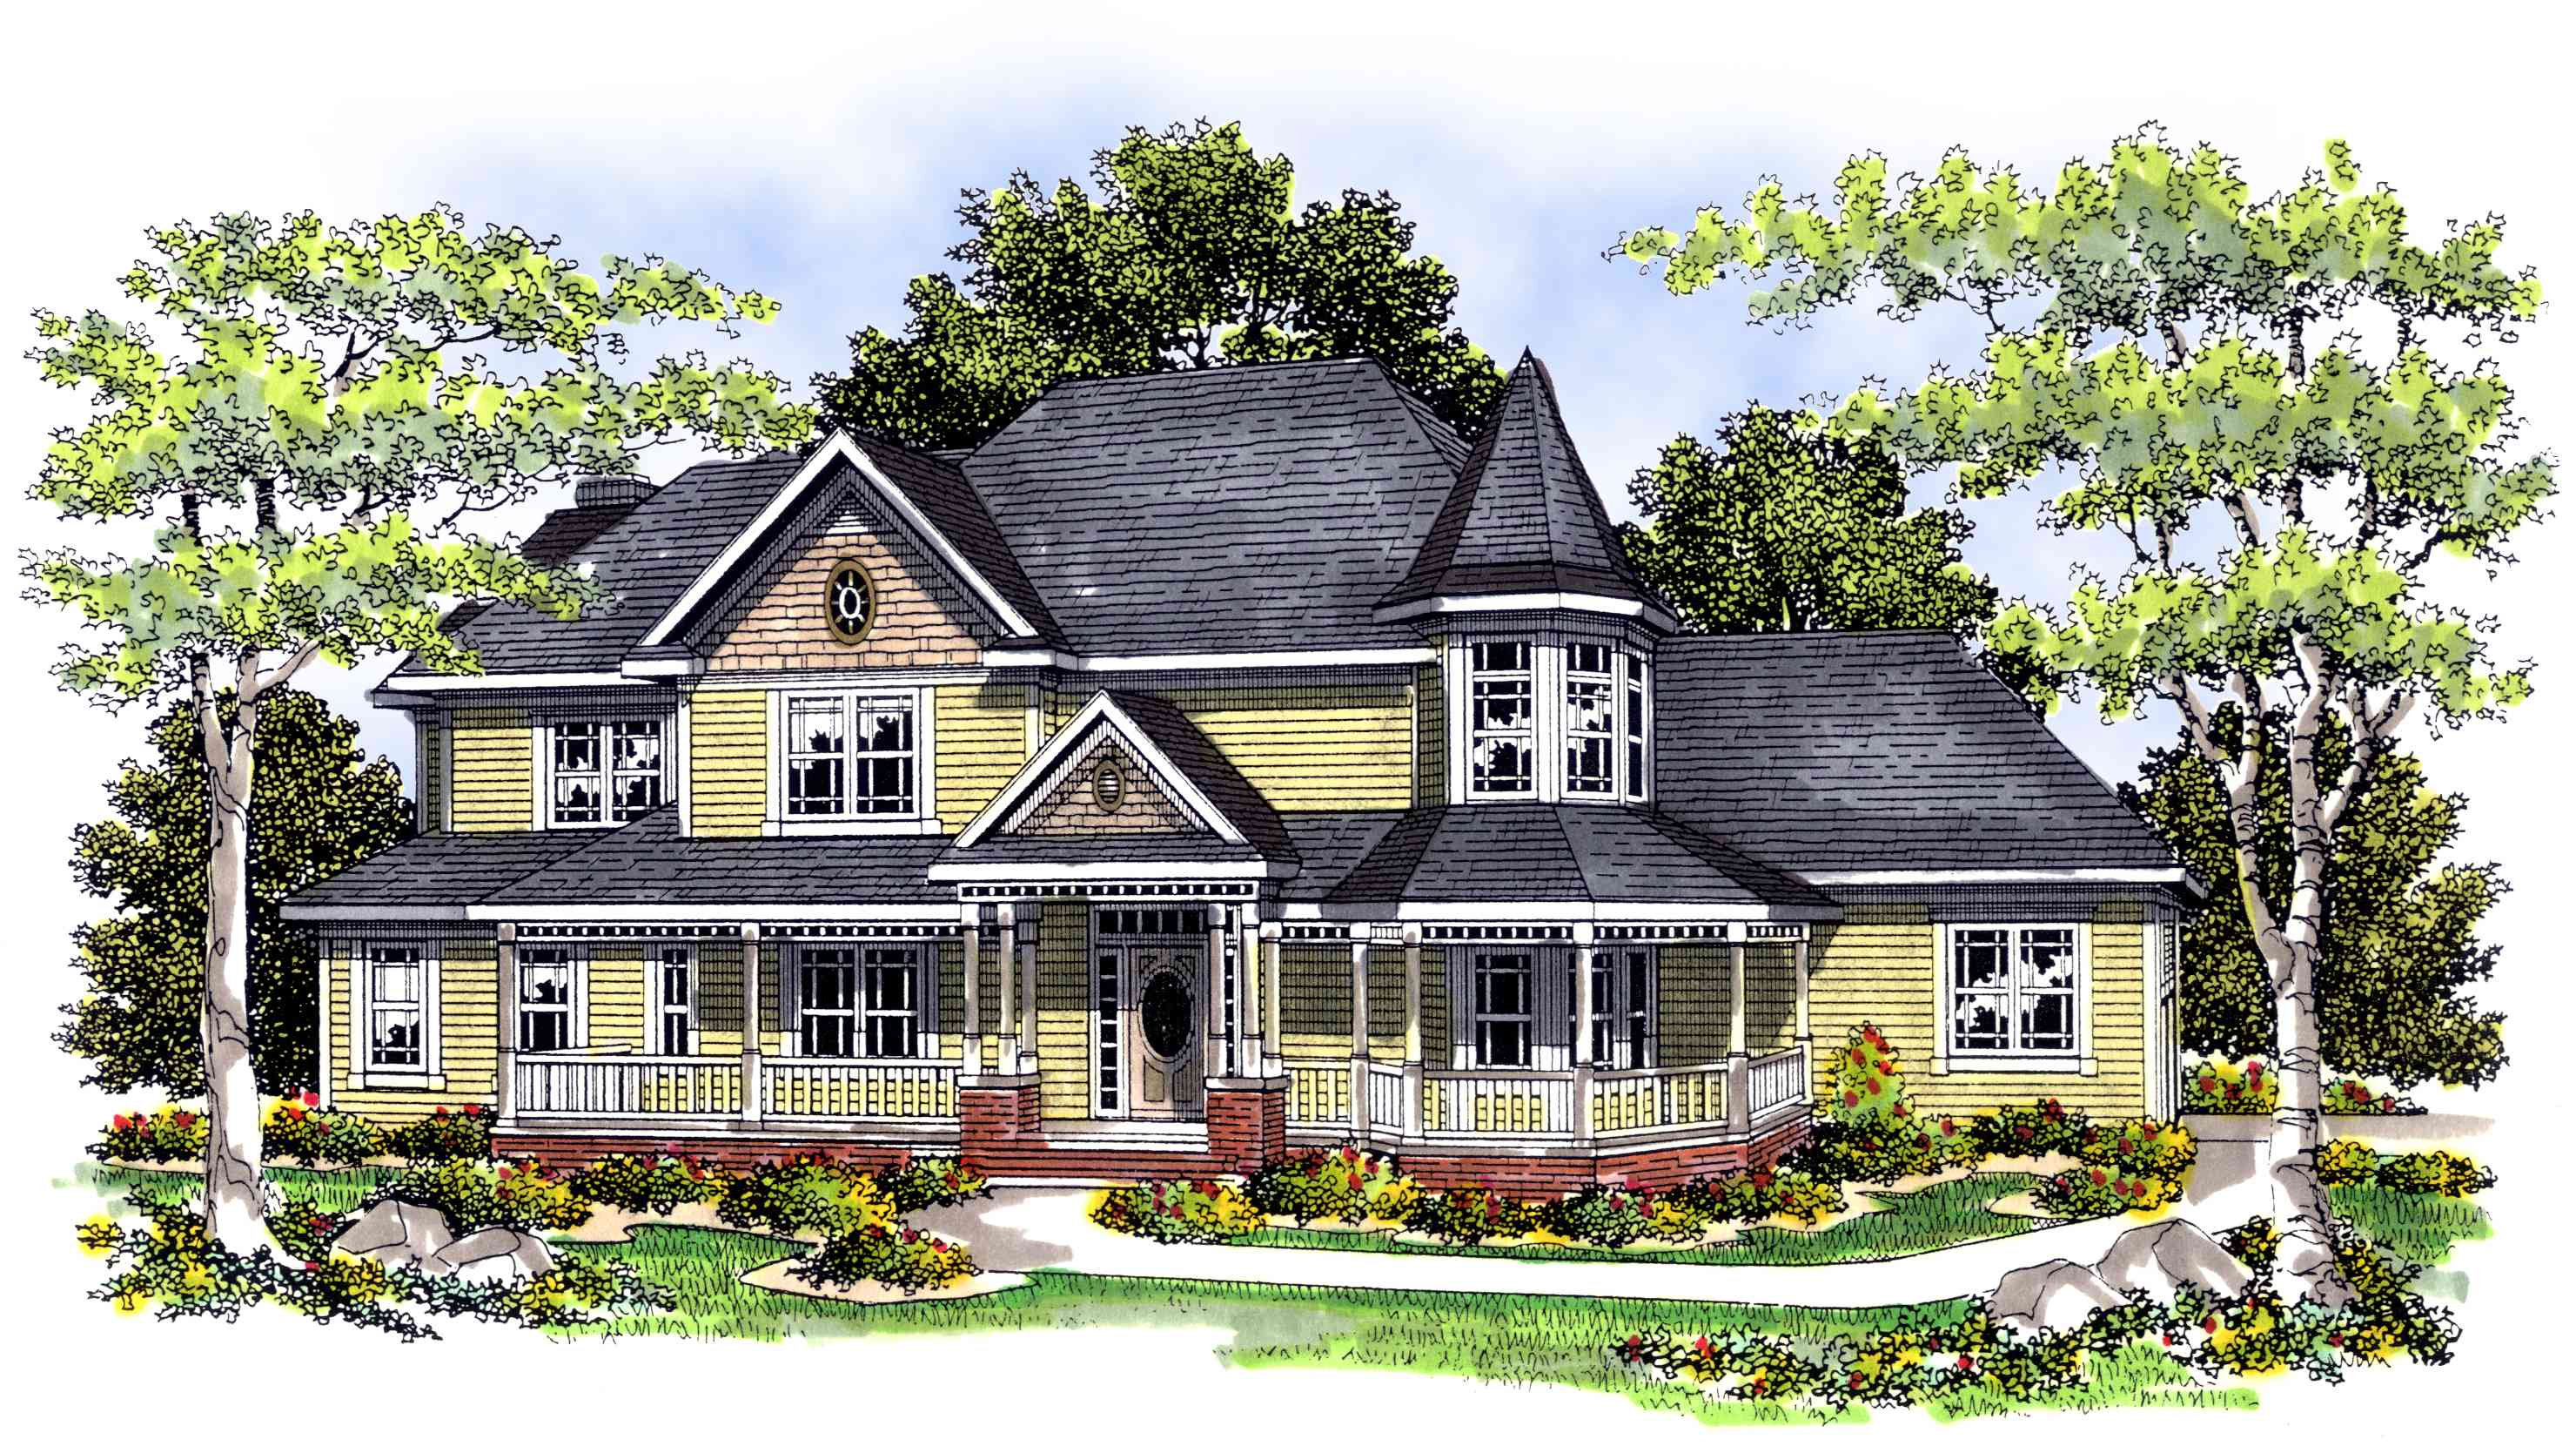 4 bedroom victorian style home plan 89415ah for Victorian style home plans